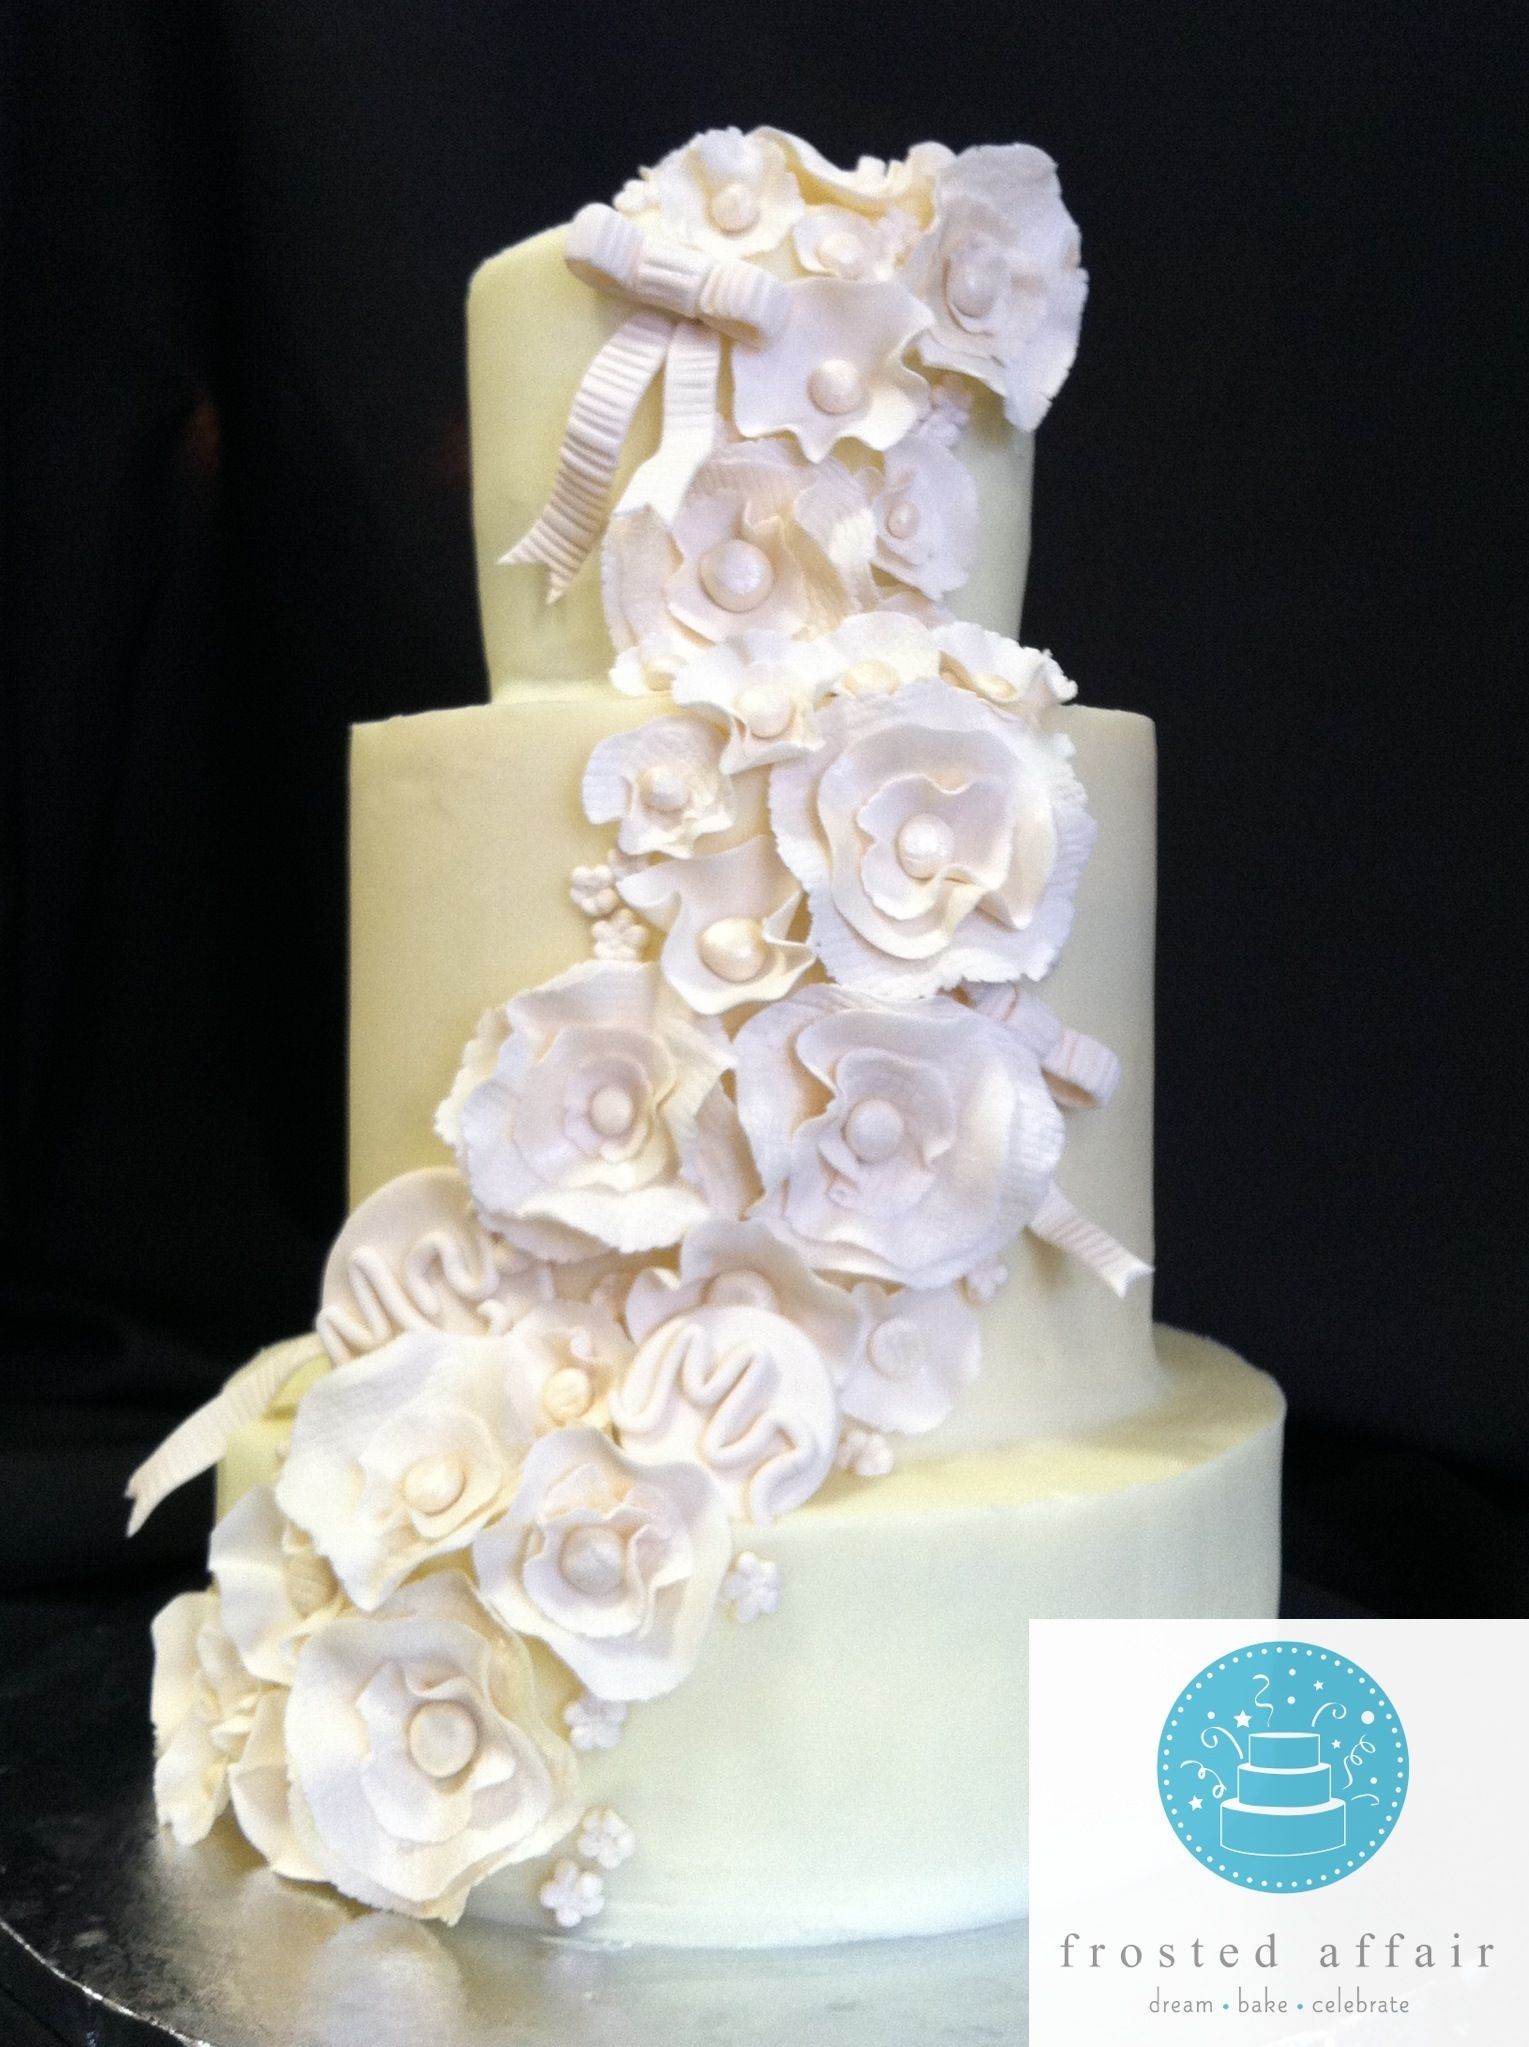 Elegant White Flowers on a Wedding Cake! Notice the hidden Mr. & Mrs ...